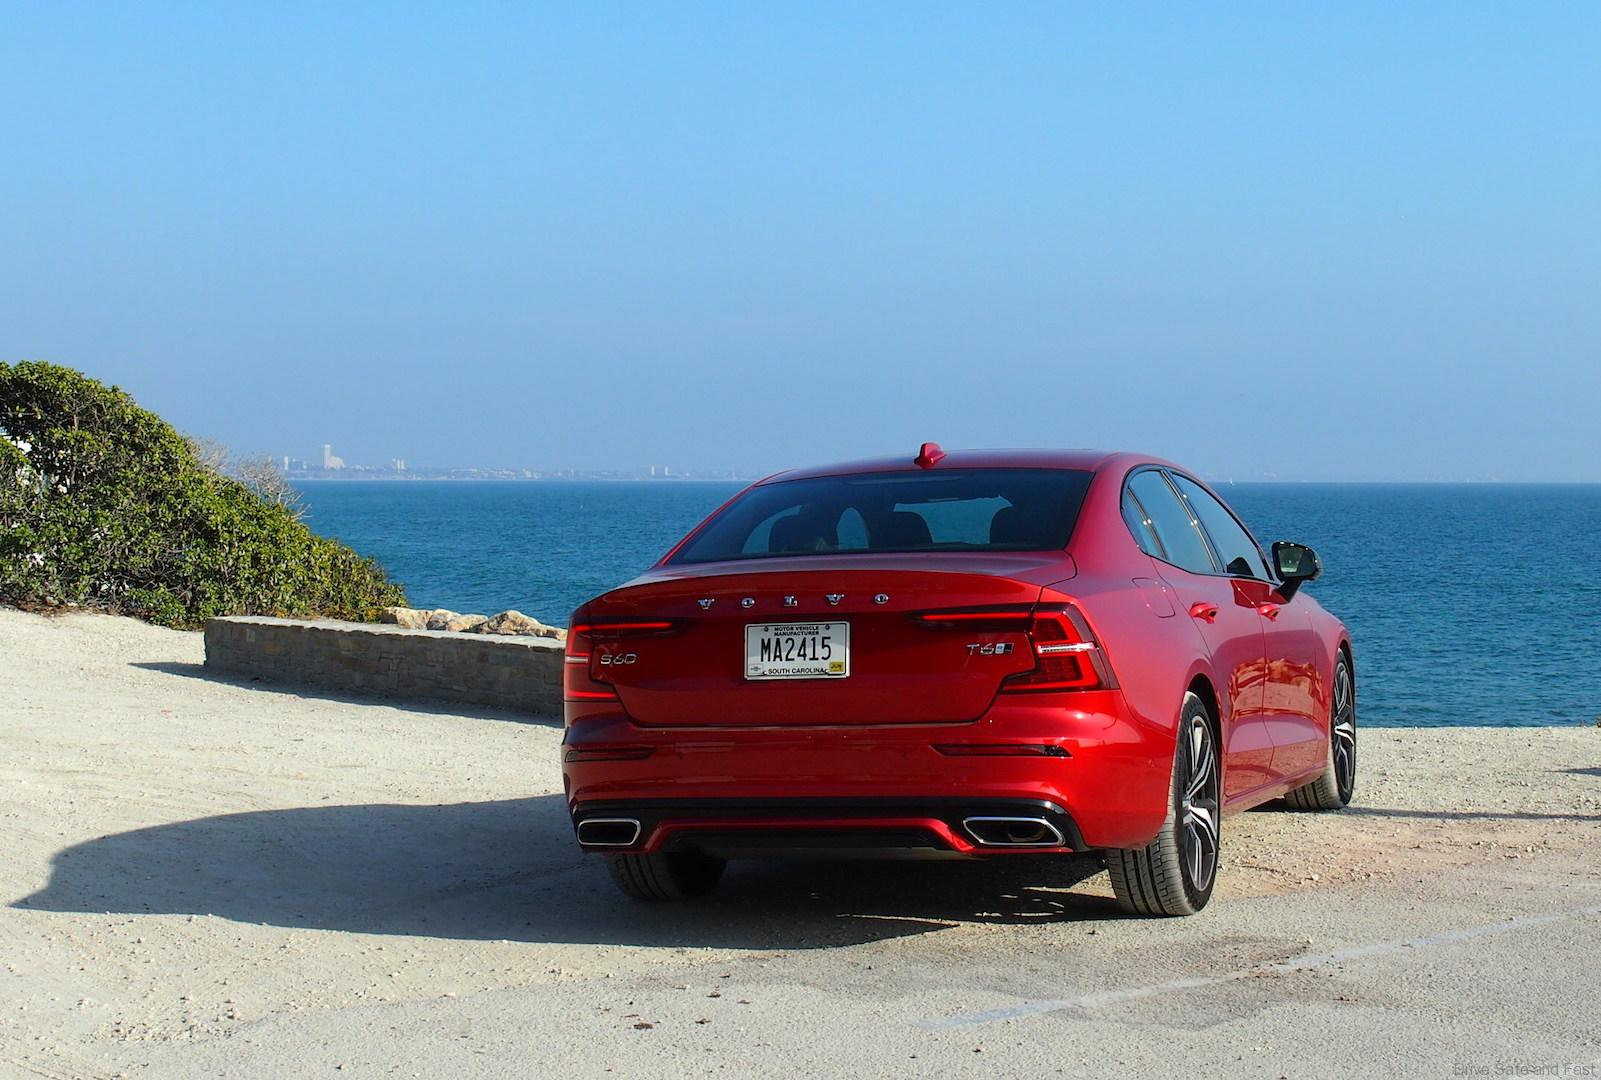 Test drive of the Volvo S60 T6 2019 in Santa Monica | Free